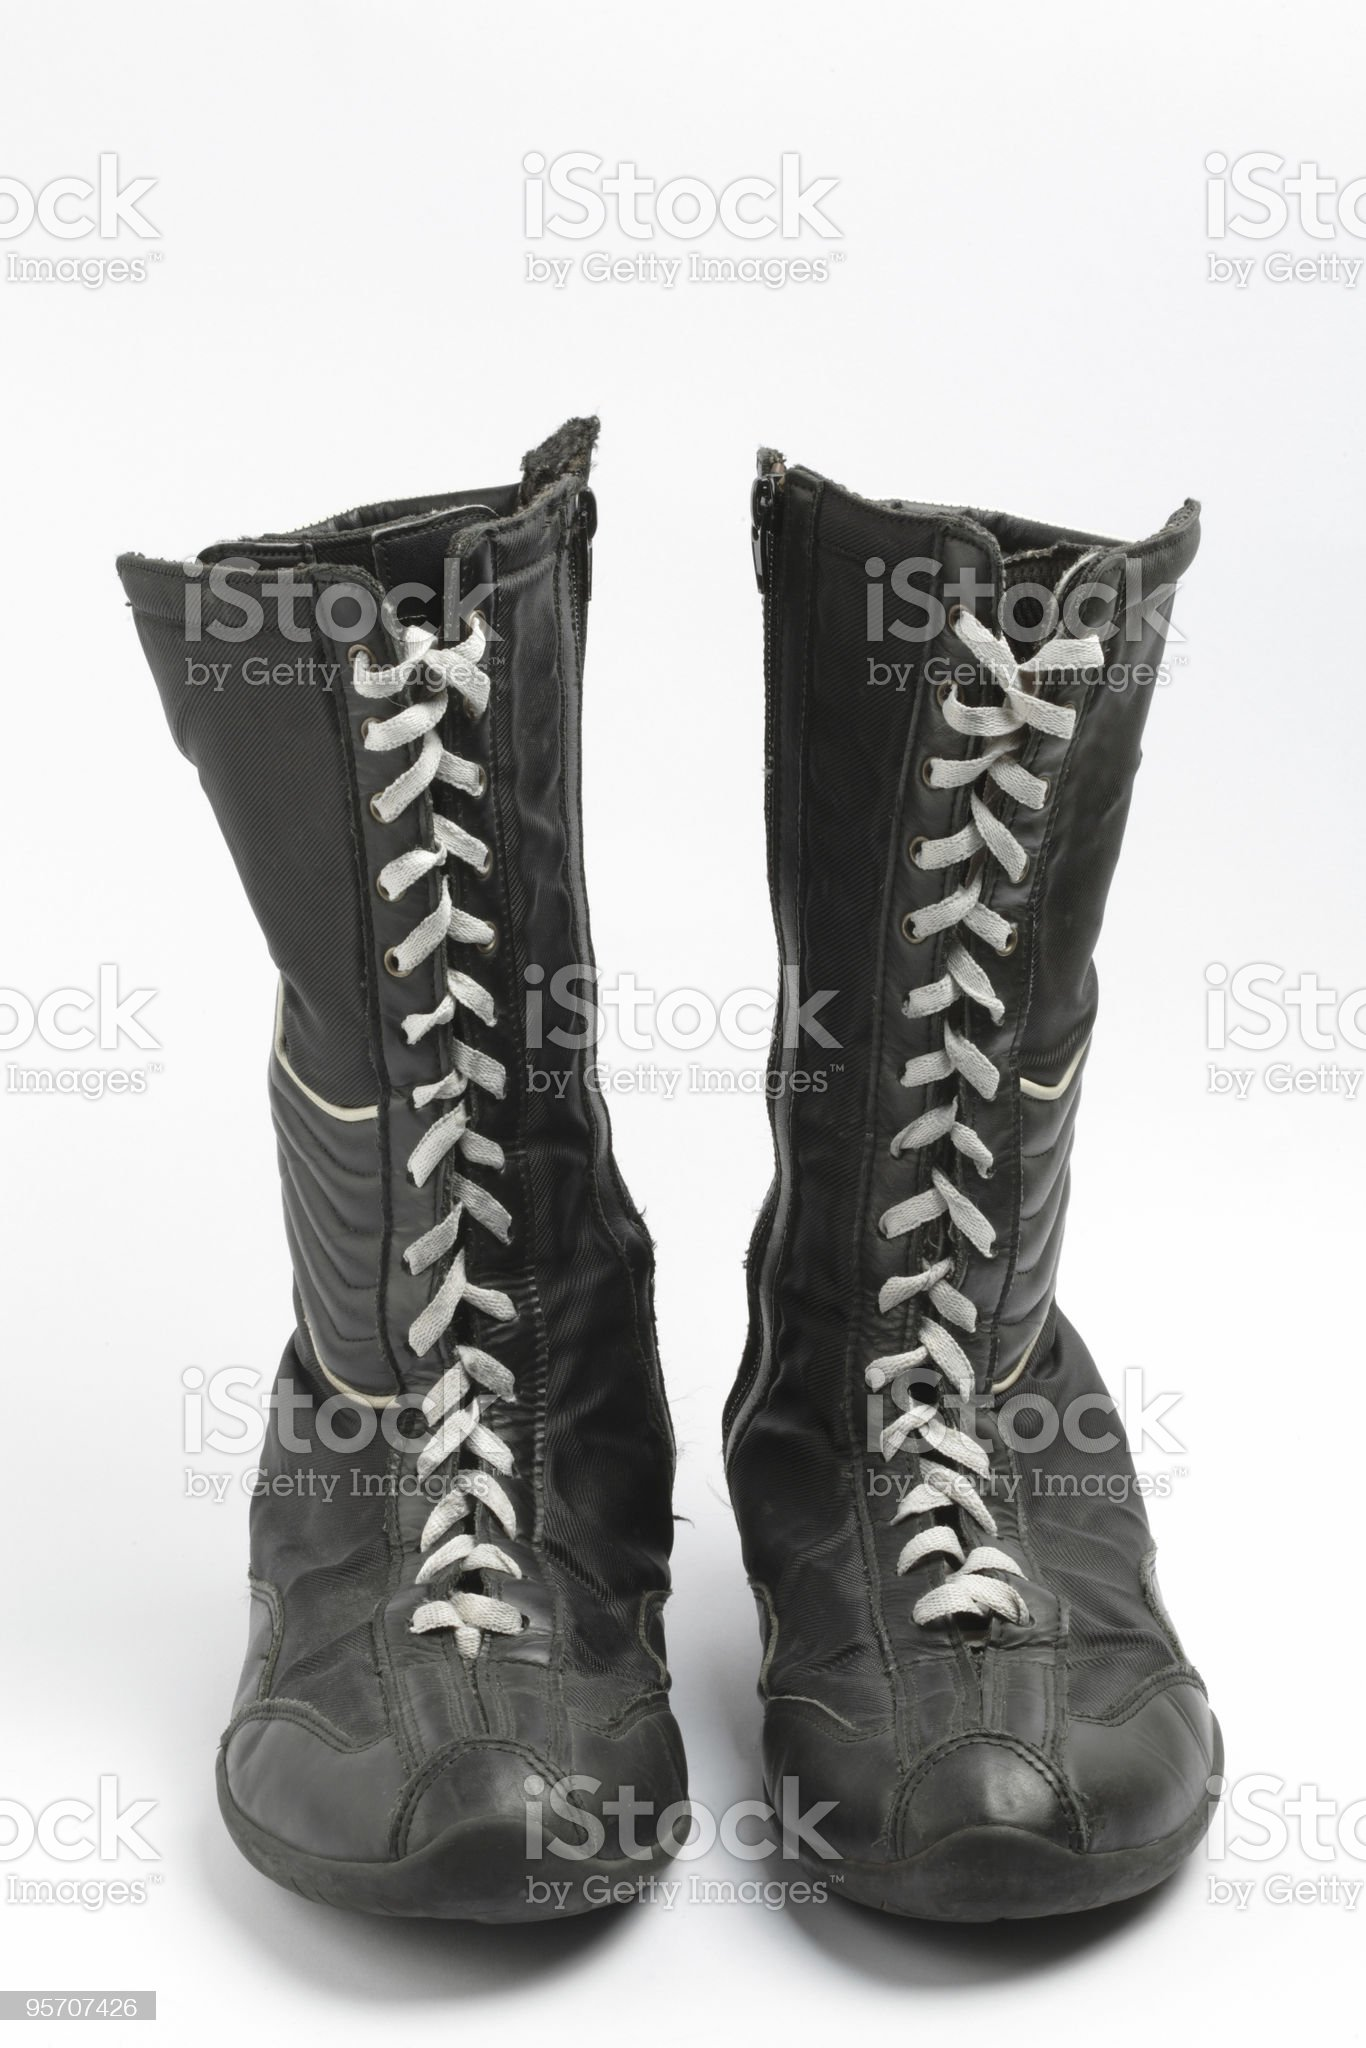 Boxing boots, isolated royalty-free stock photo